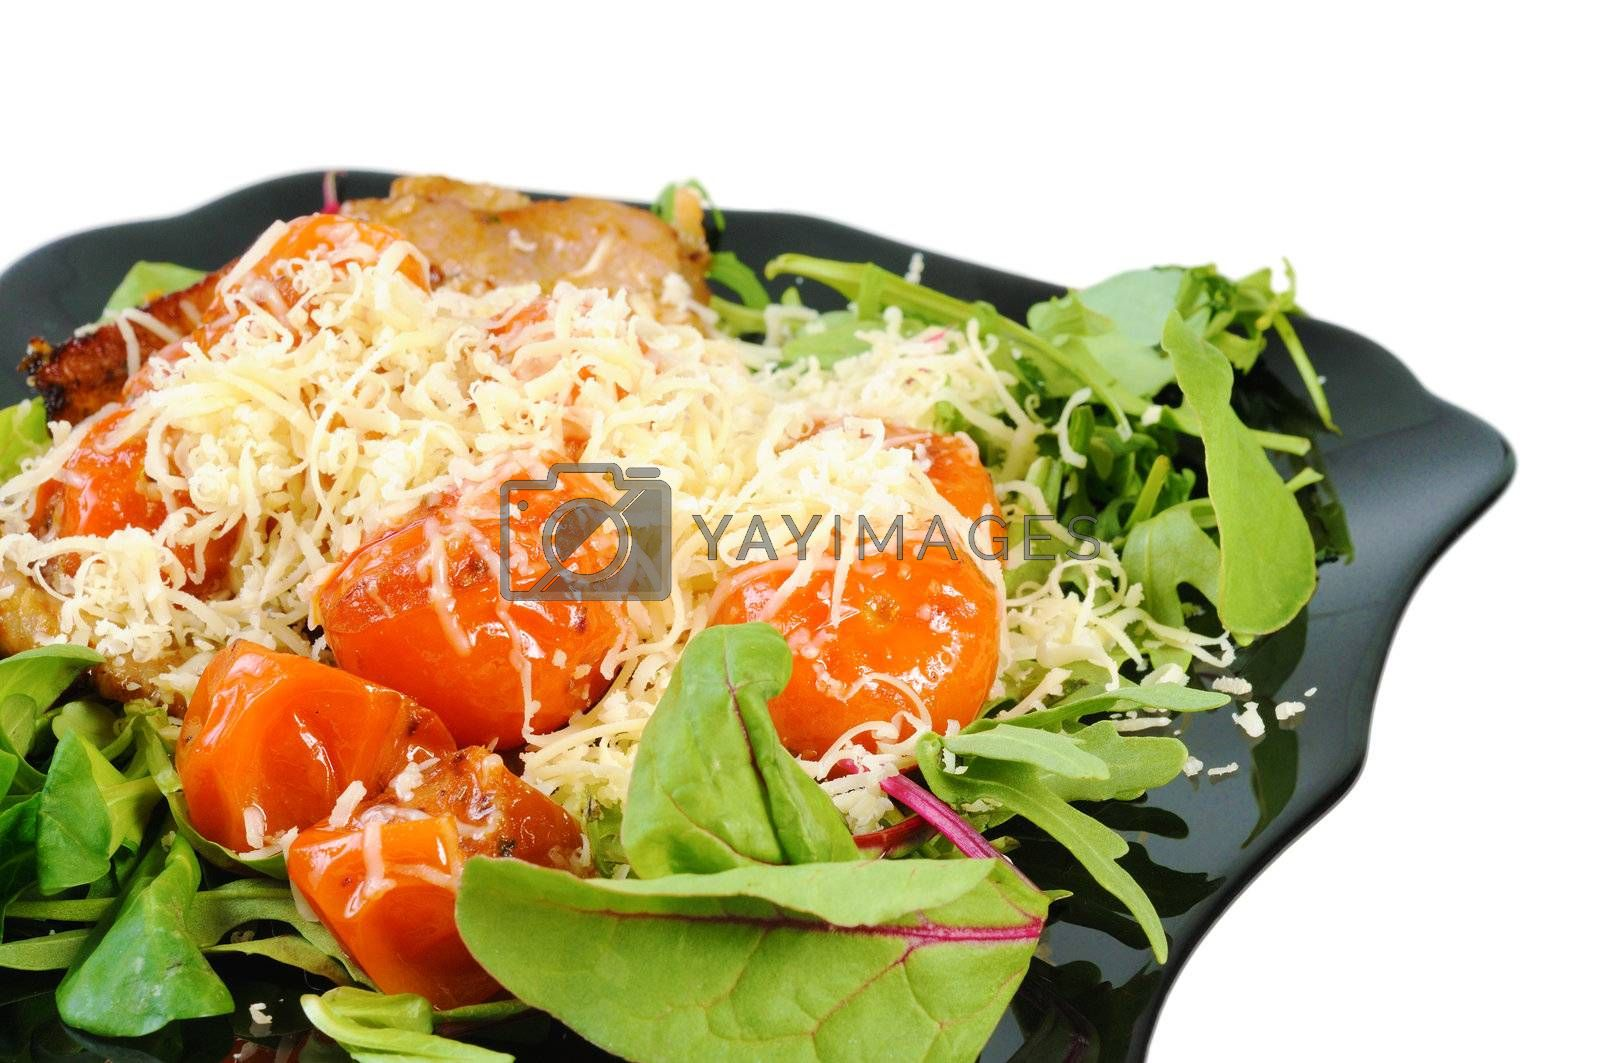 Salad with arugula and tomatoes. Isolated on white.